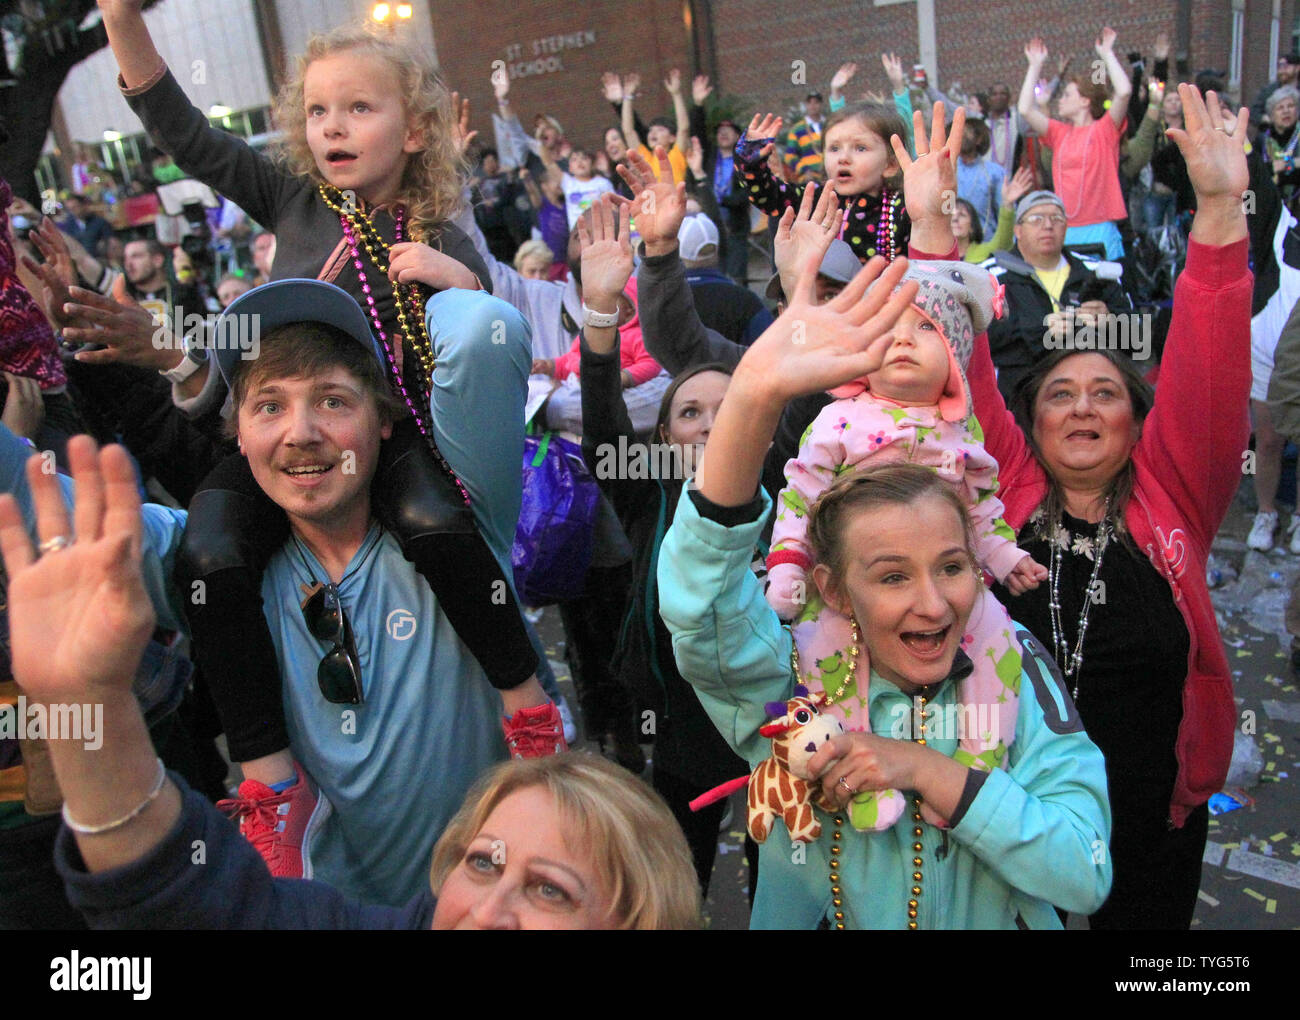 Mardi Gras revelers reach for beads during the Krewe of Bacchus Mardi Gras parade Sunday, February 26, 2017. The Krewe of Bacchus has been rolling on the traditional Uptown route since 1969. Photo by AJ Sisco/UPI Stock Photo